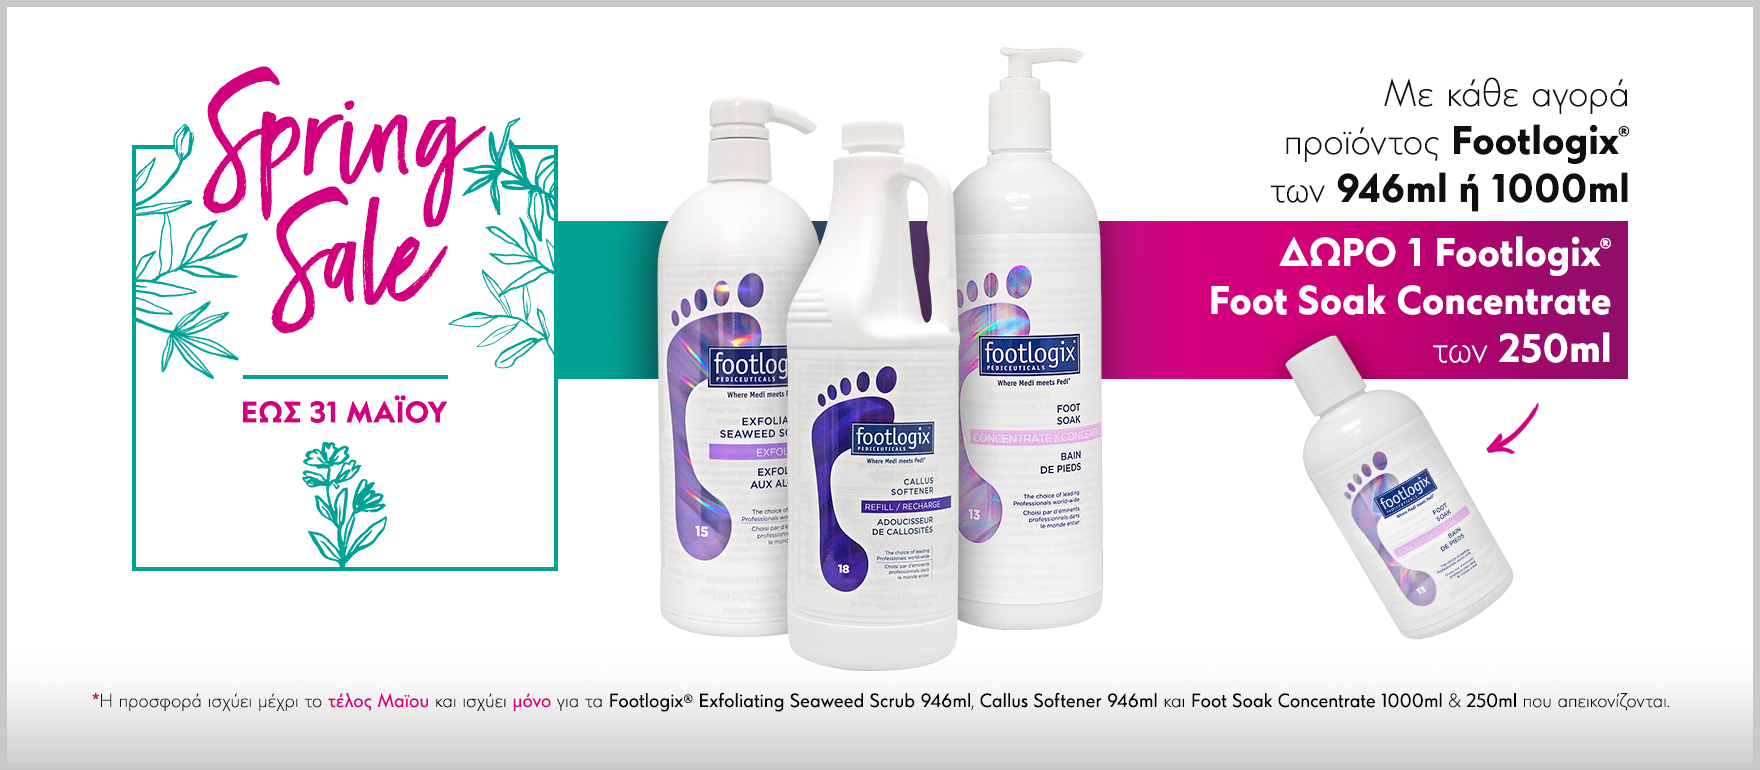 Spring Sale - Footlogix Gift 250ml